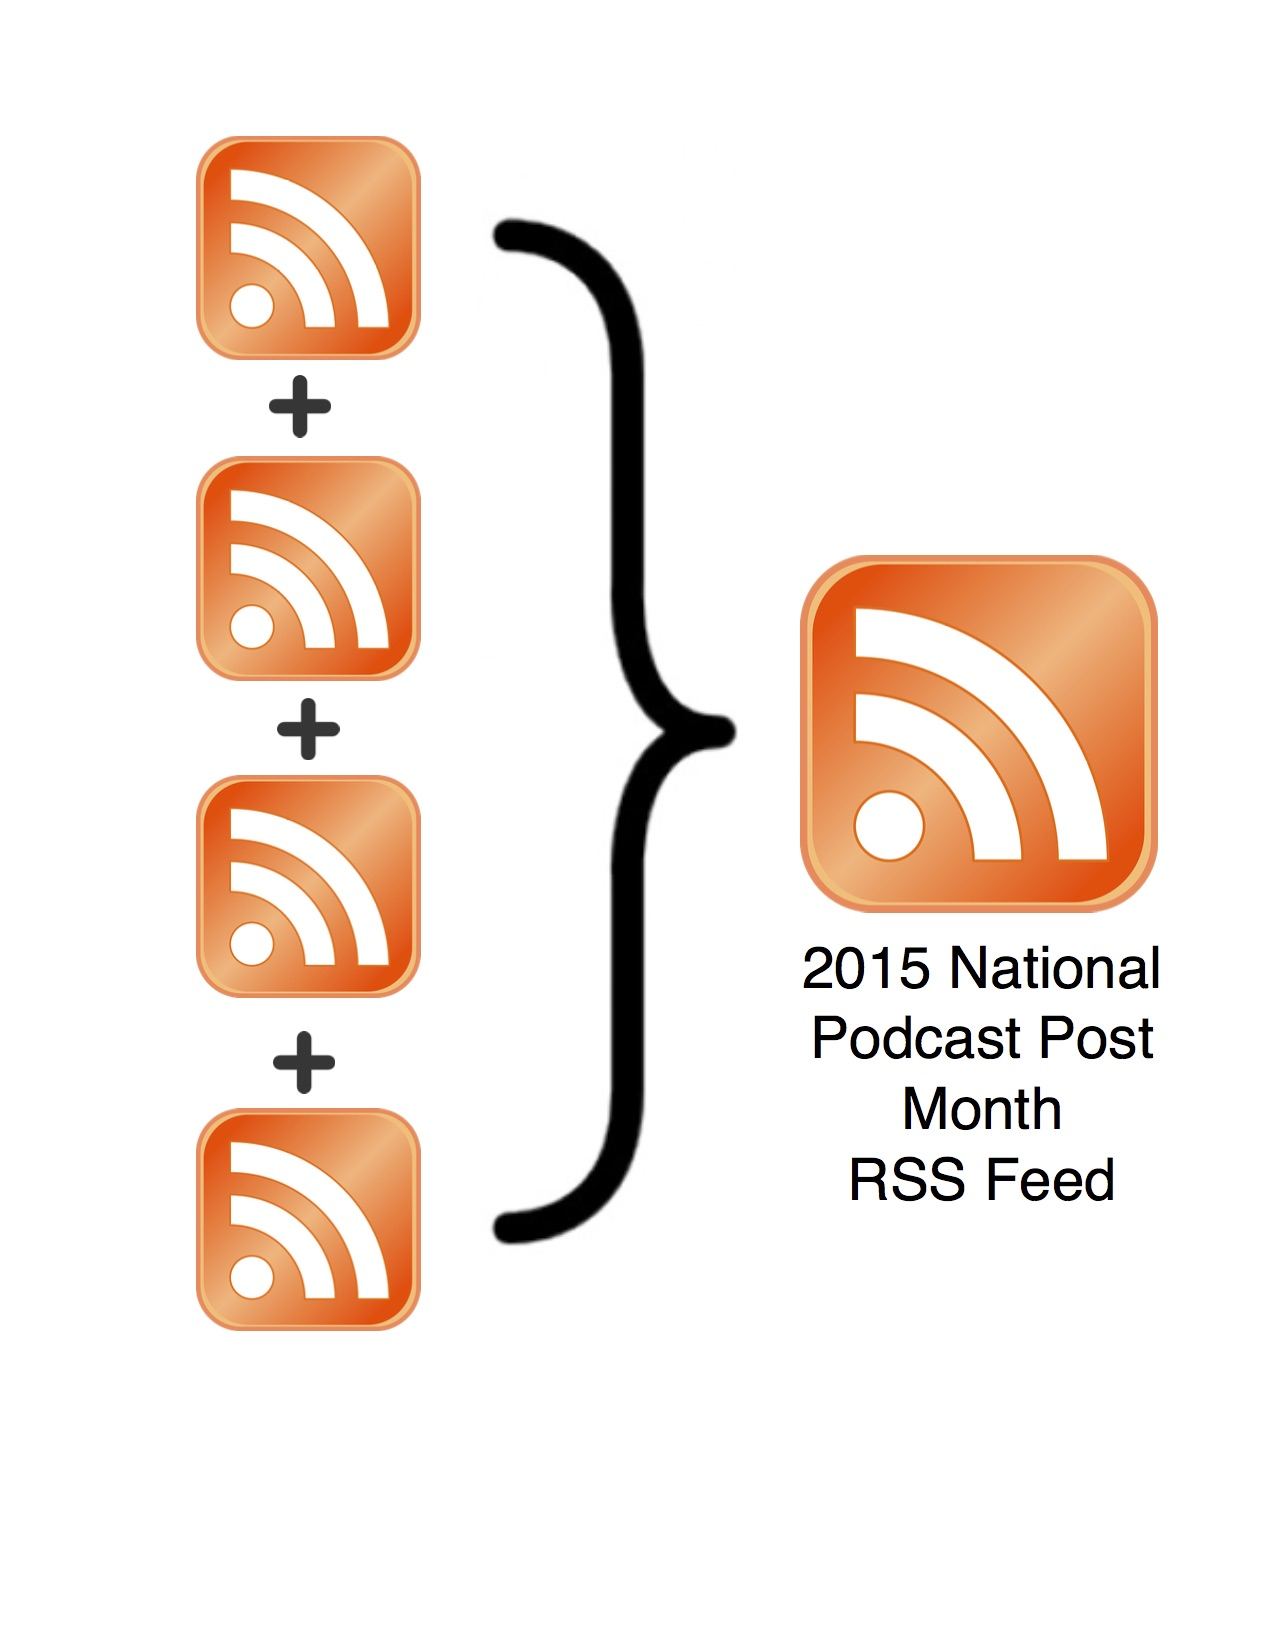 how to create rss feed for podcast